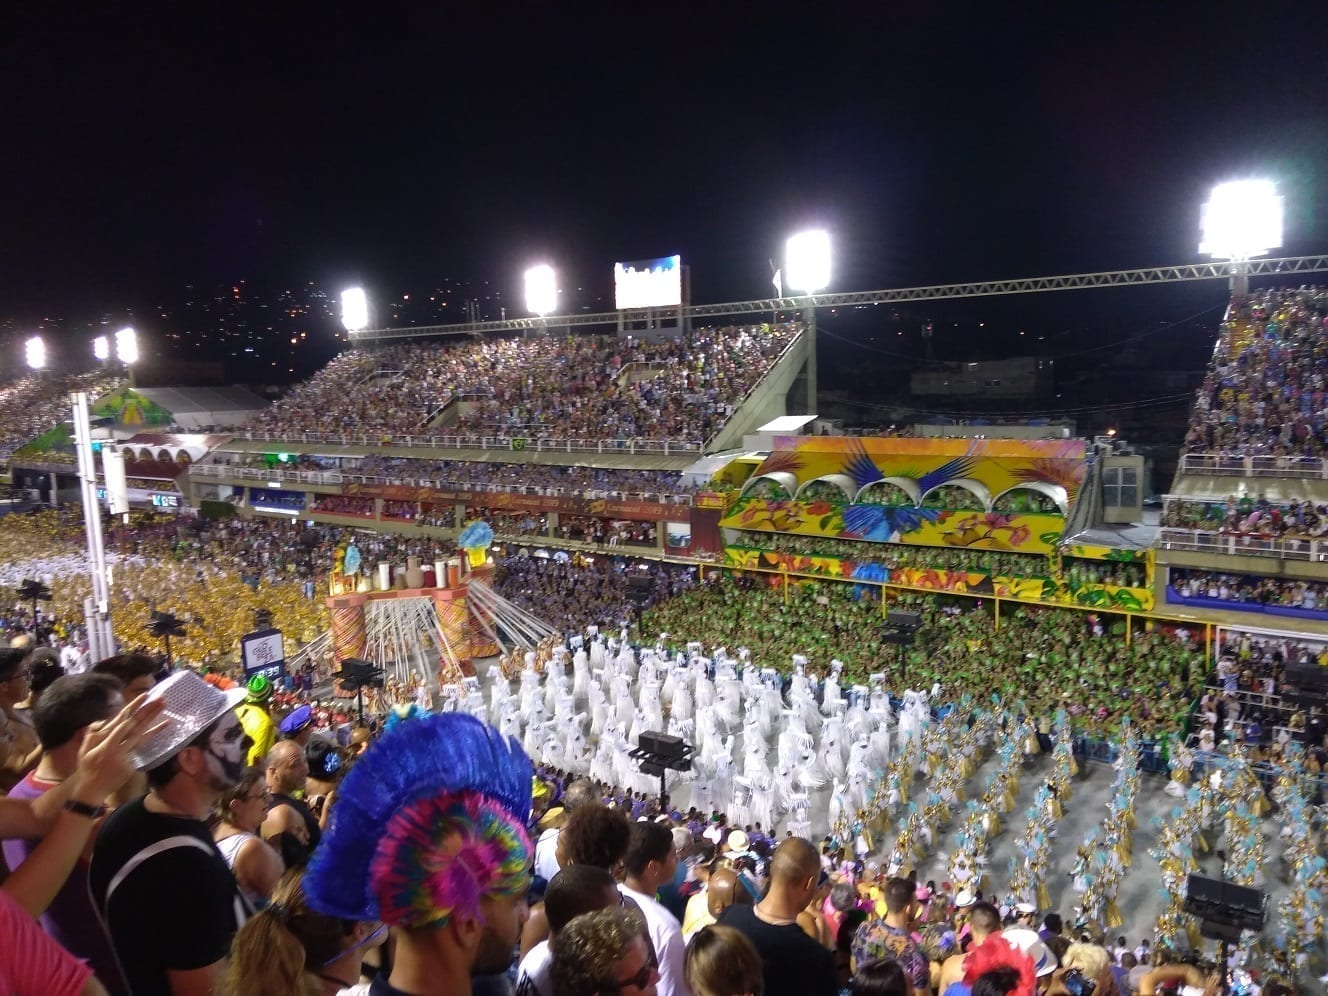 Crowded grandstands, full of people watching the Carnival Parades in Rio.